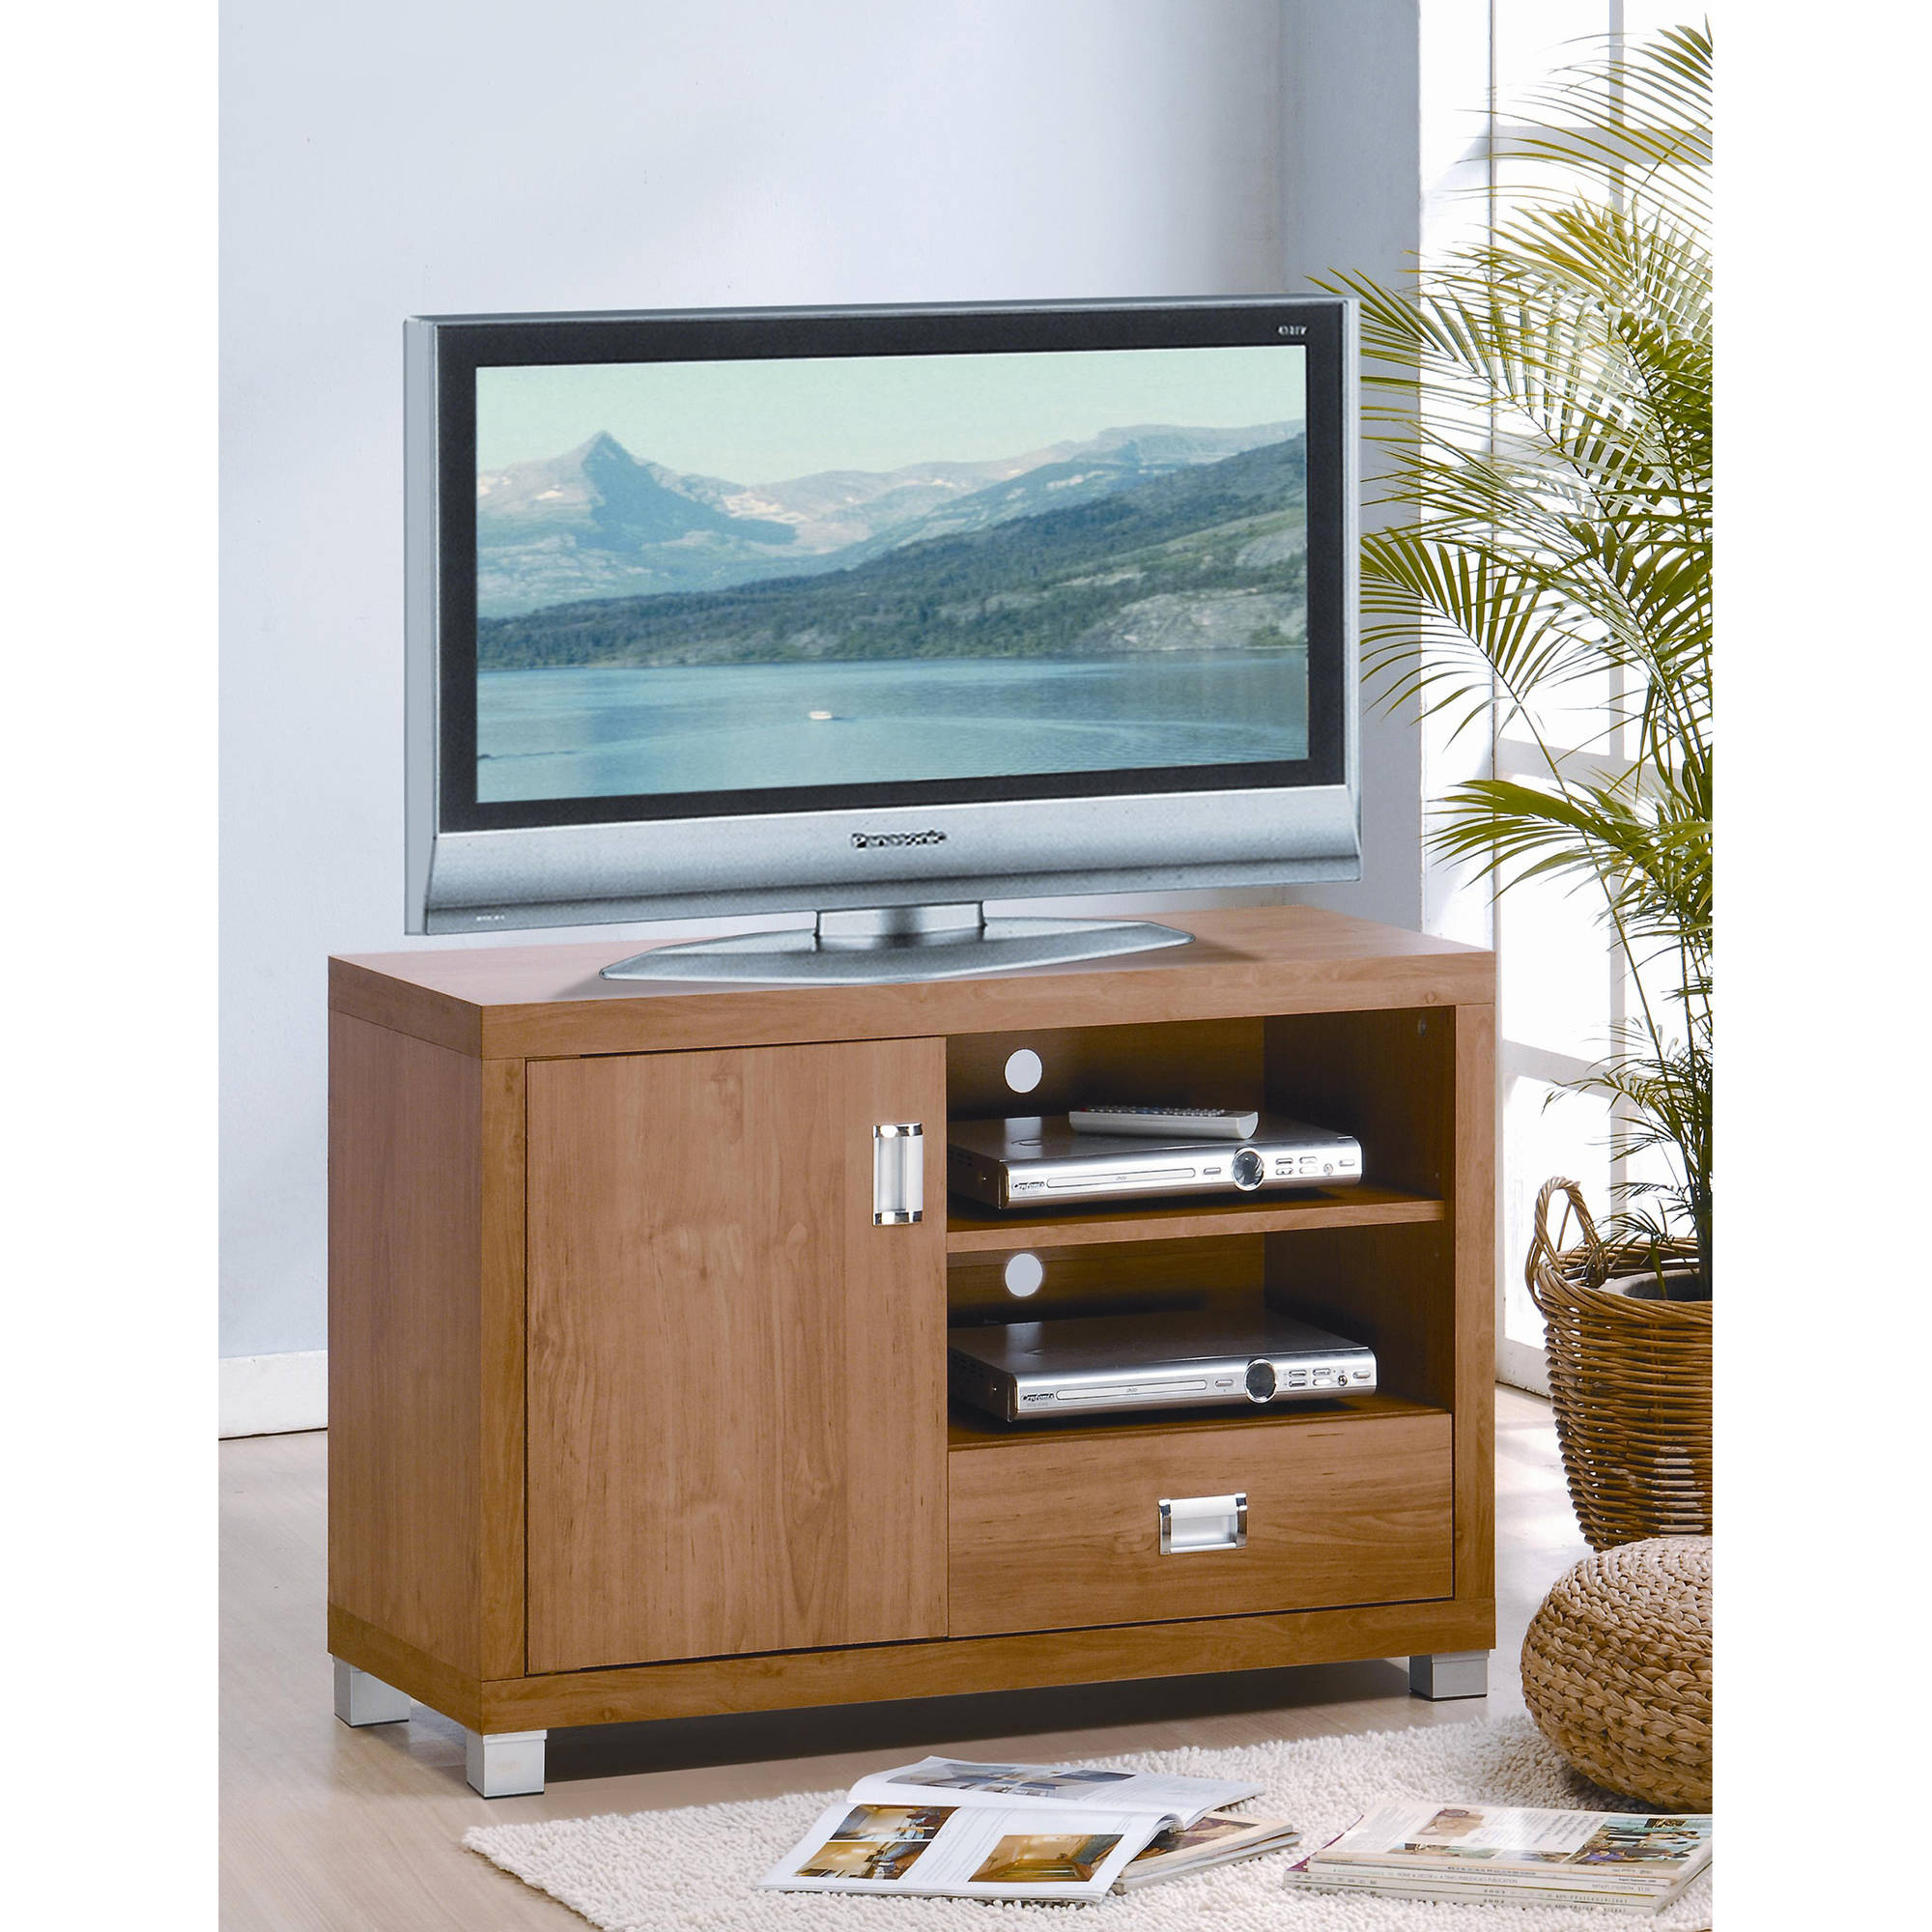 Techni Mobili Tv Stand For Tvs Up To 38 With Storage Maple Rta 8830 Mpl